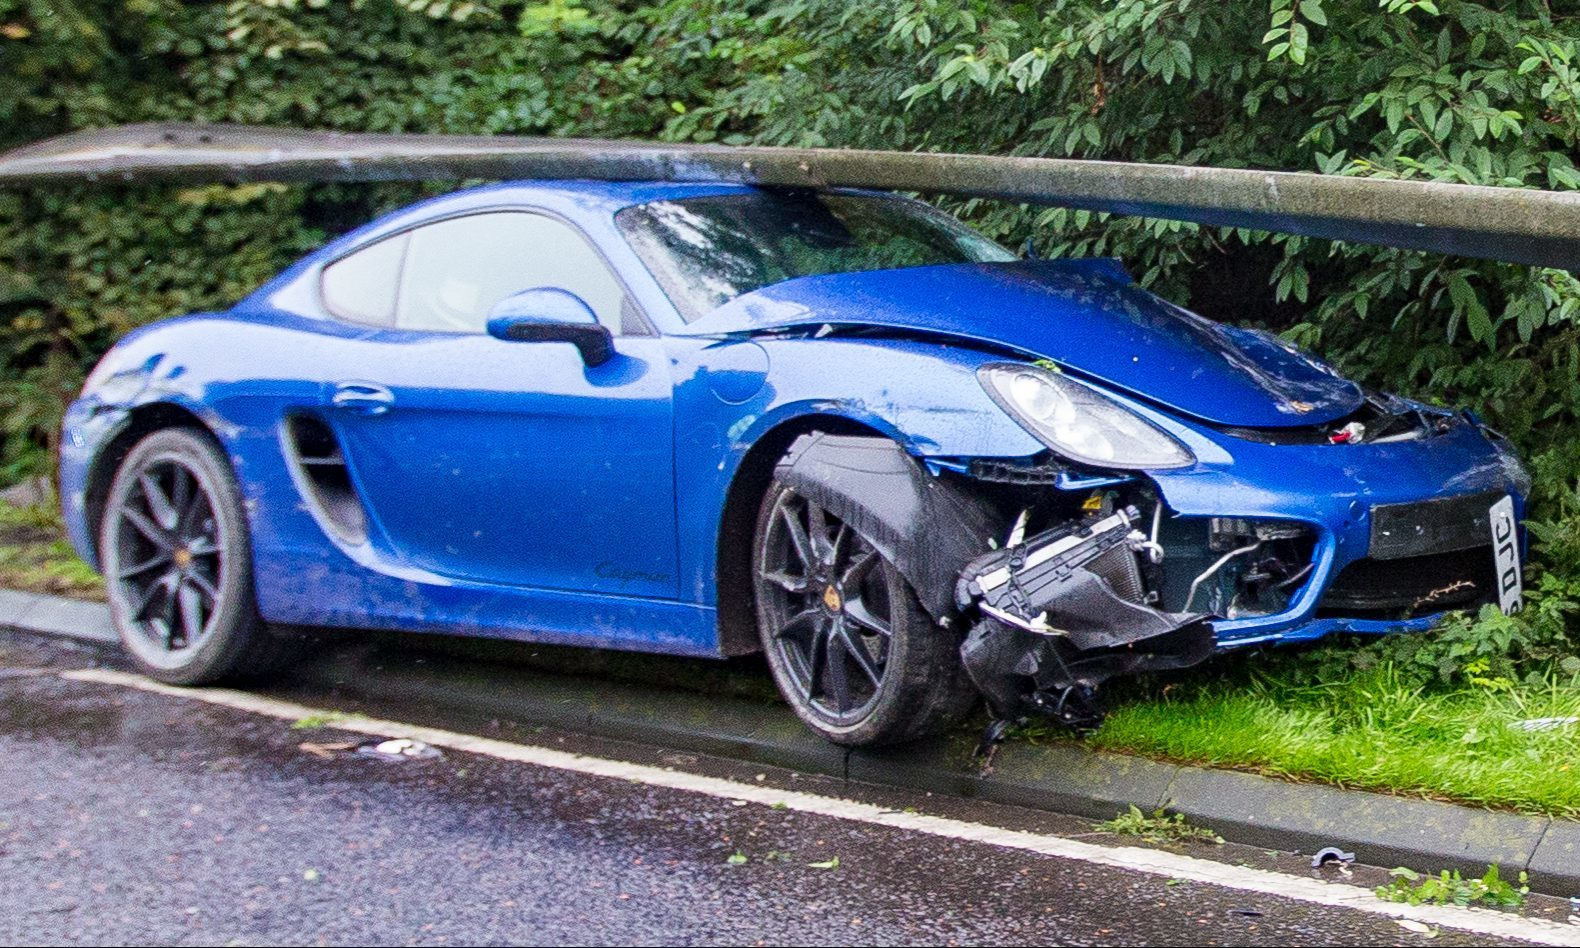 The Porsche sports car was wedged under the barrier on the south side of the bridge.